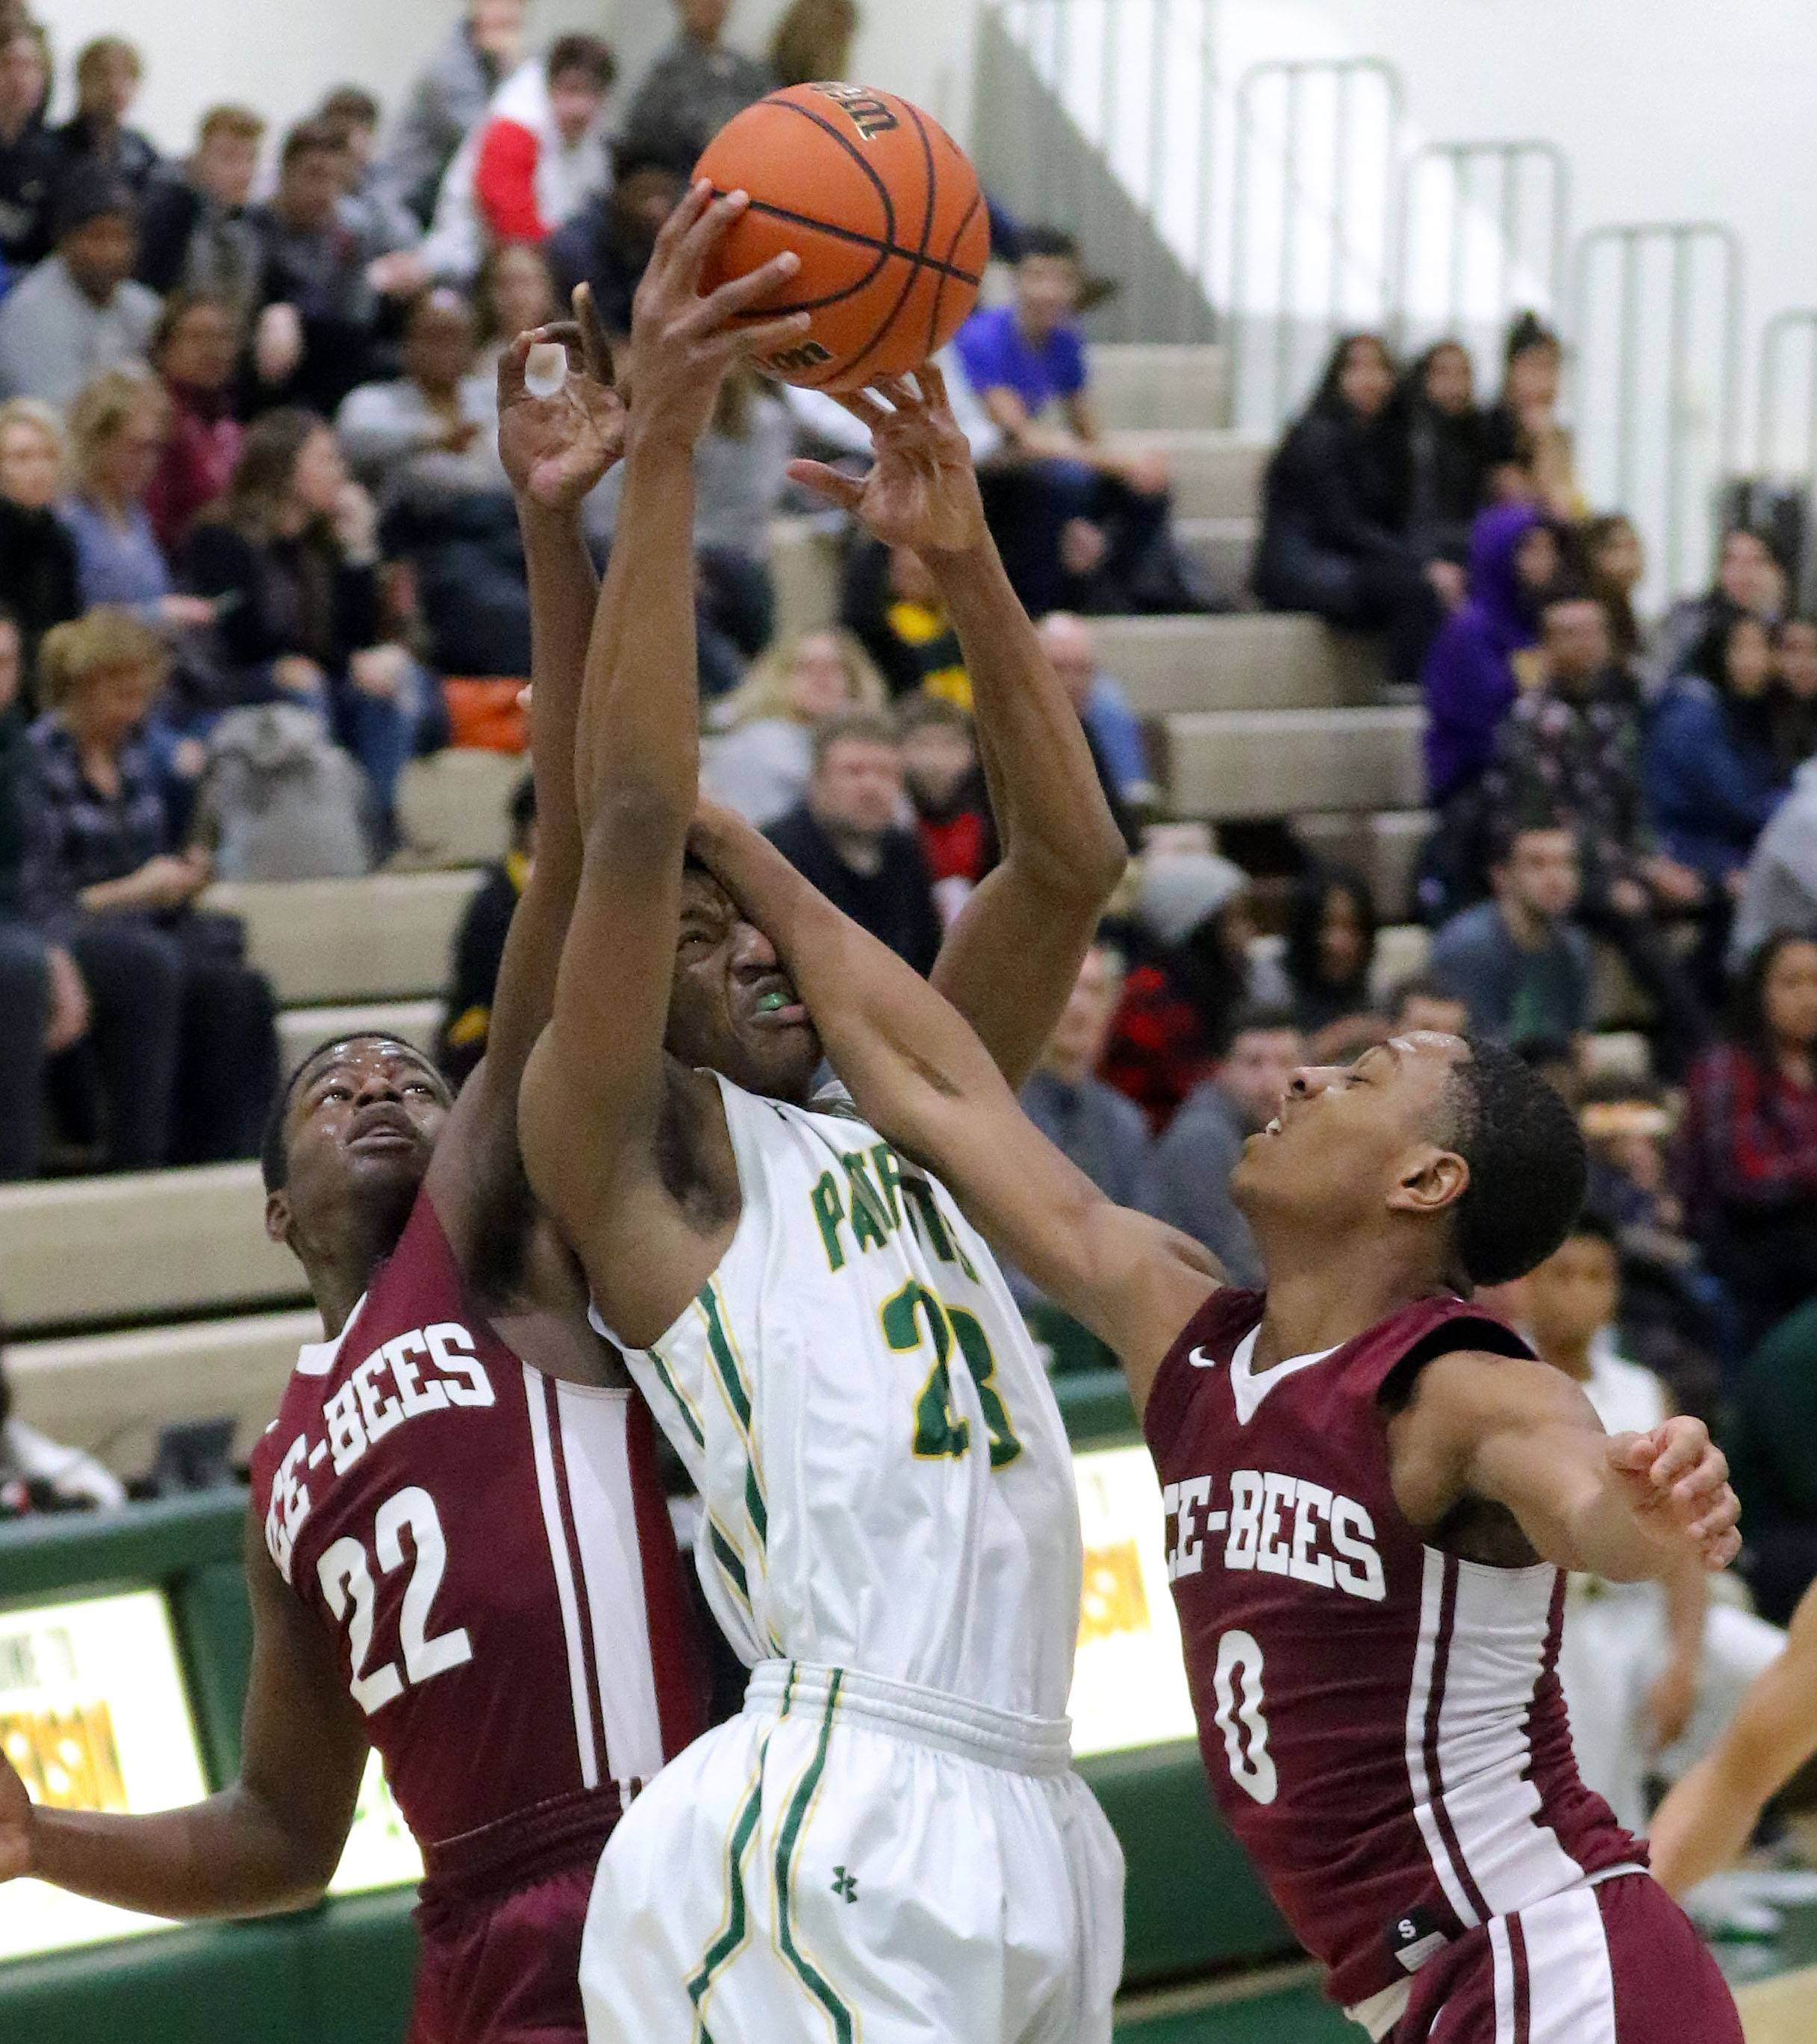 Stevenson's RJ Holmes, middle, battles for a rebound with Zion-Benton's Floyd Bailey (22) and Quentin Williams during their game Friday in Lincolnshire.